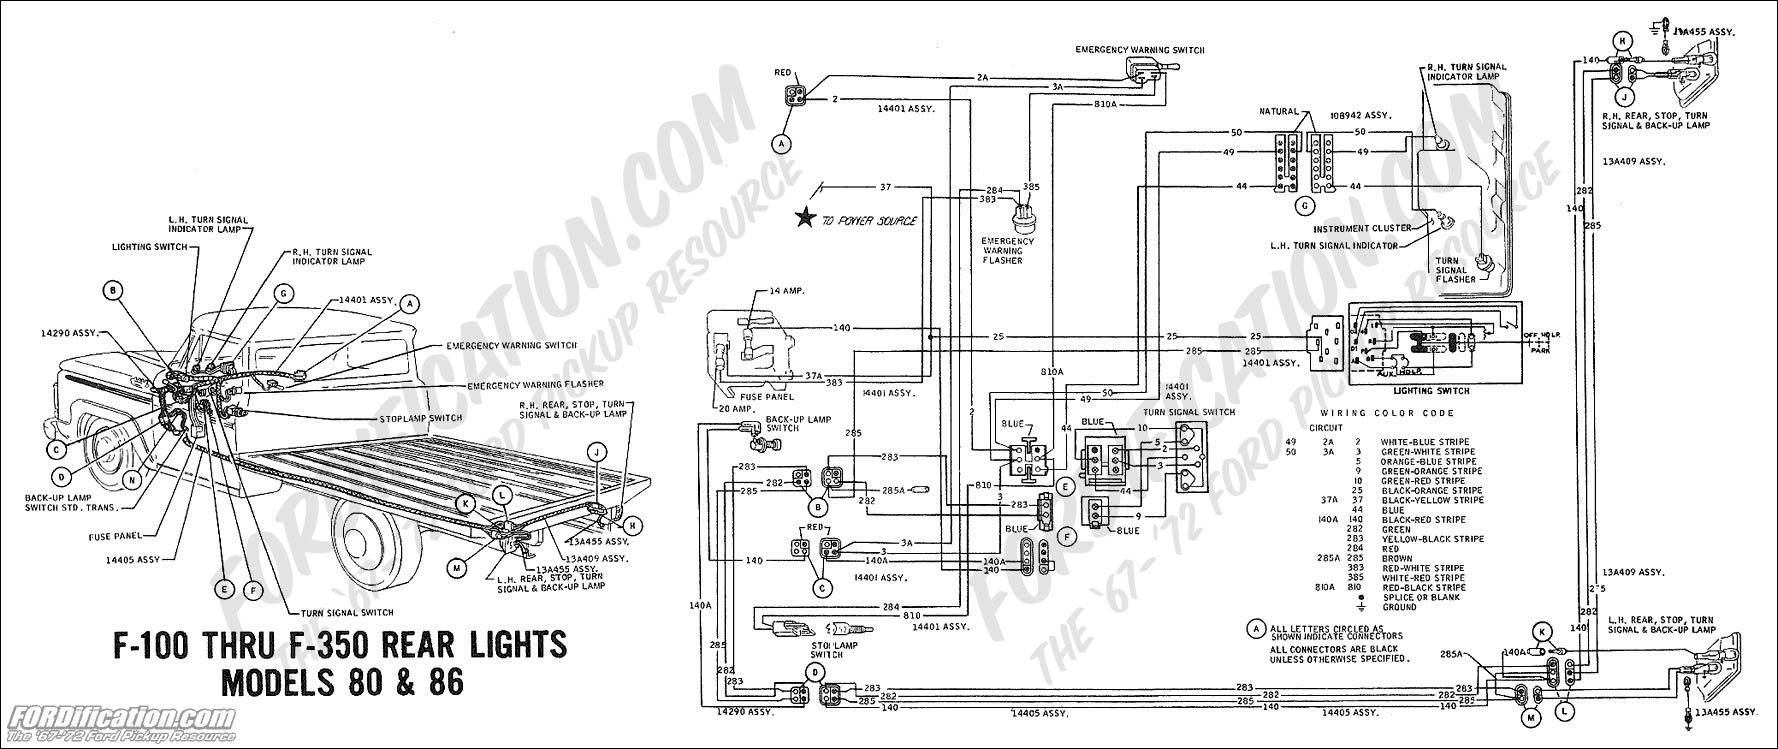 wiring_69rearlights mdls80 86 ford truck technical drawings and schematics section h wiring 2013 Ford F350 Wiring Diagram at edmiracle.co